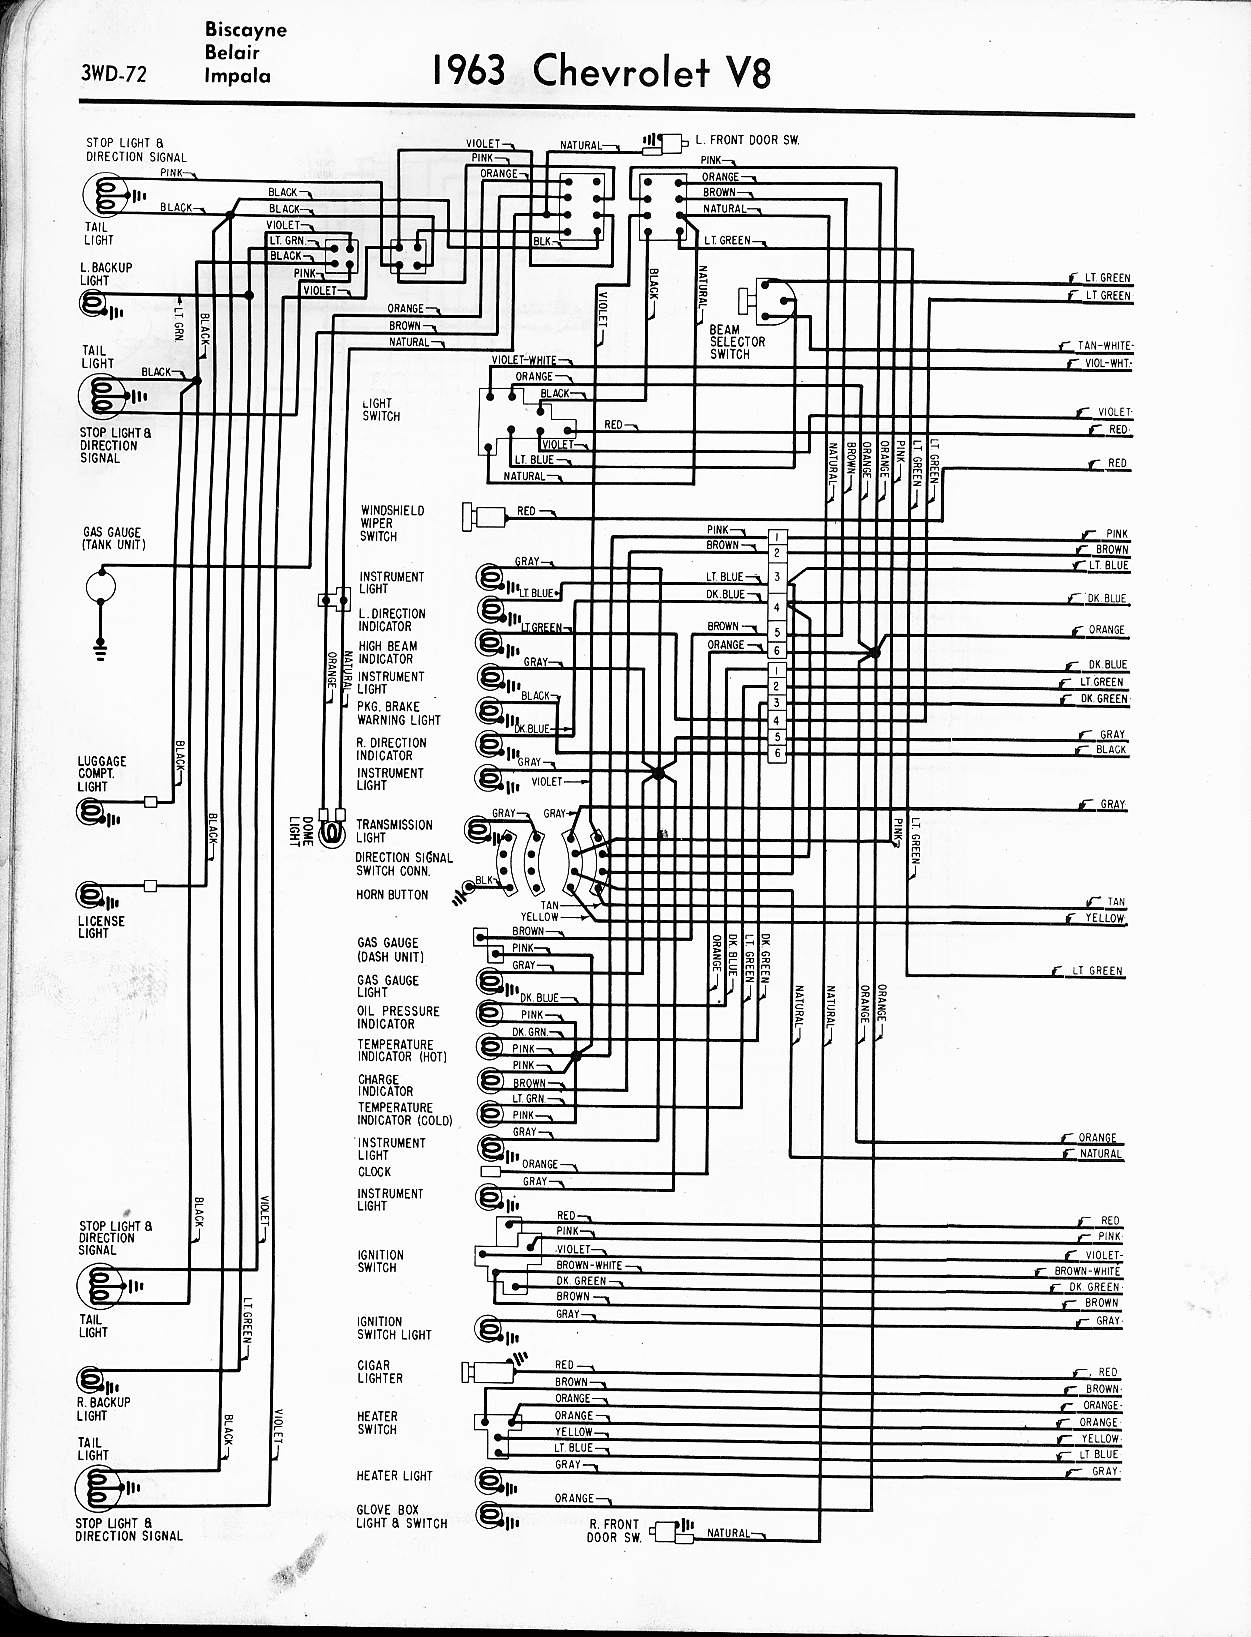 hight resolution of 57 65 chevy wiring diagrams1963 v8 biscayne belair impala left